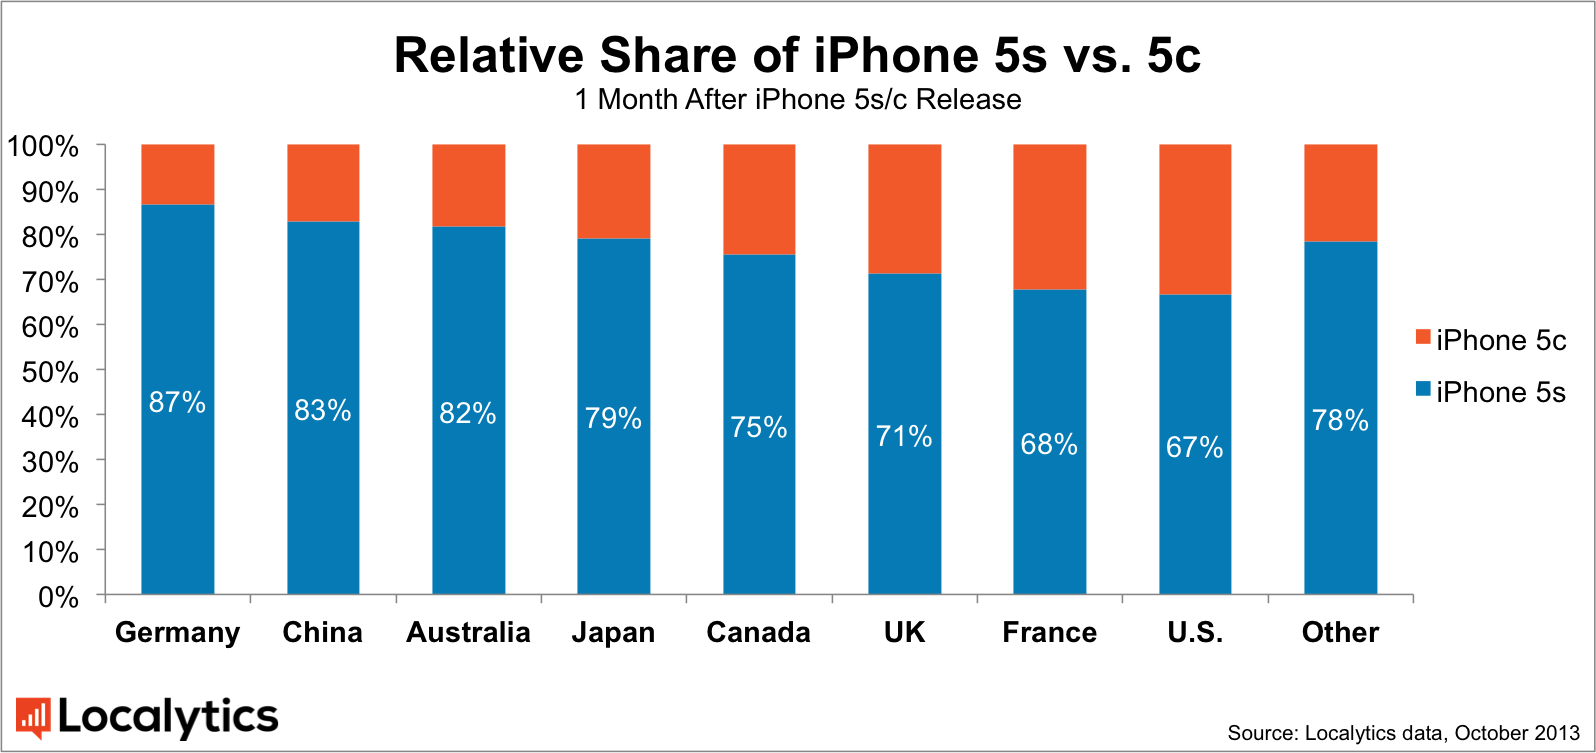 Relative-Share-of-iPhone-5s-vs-5c_v2